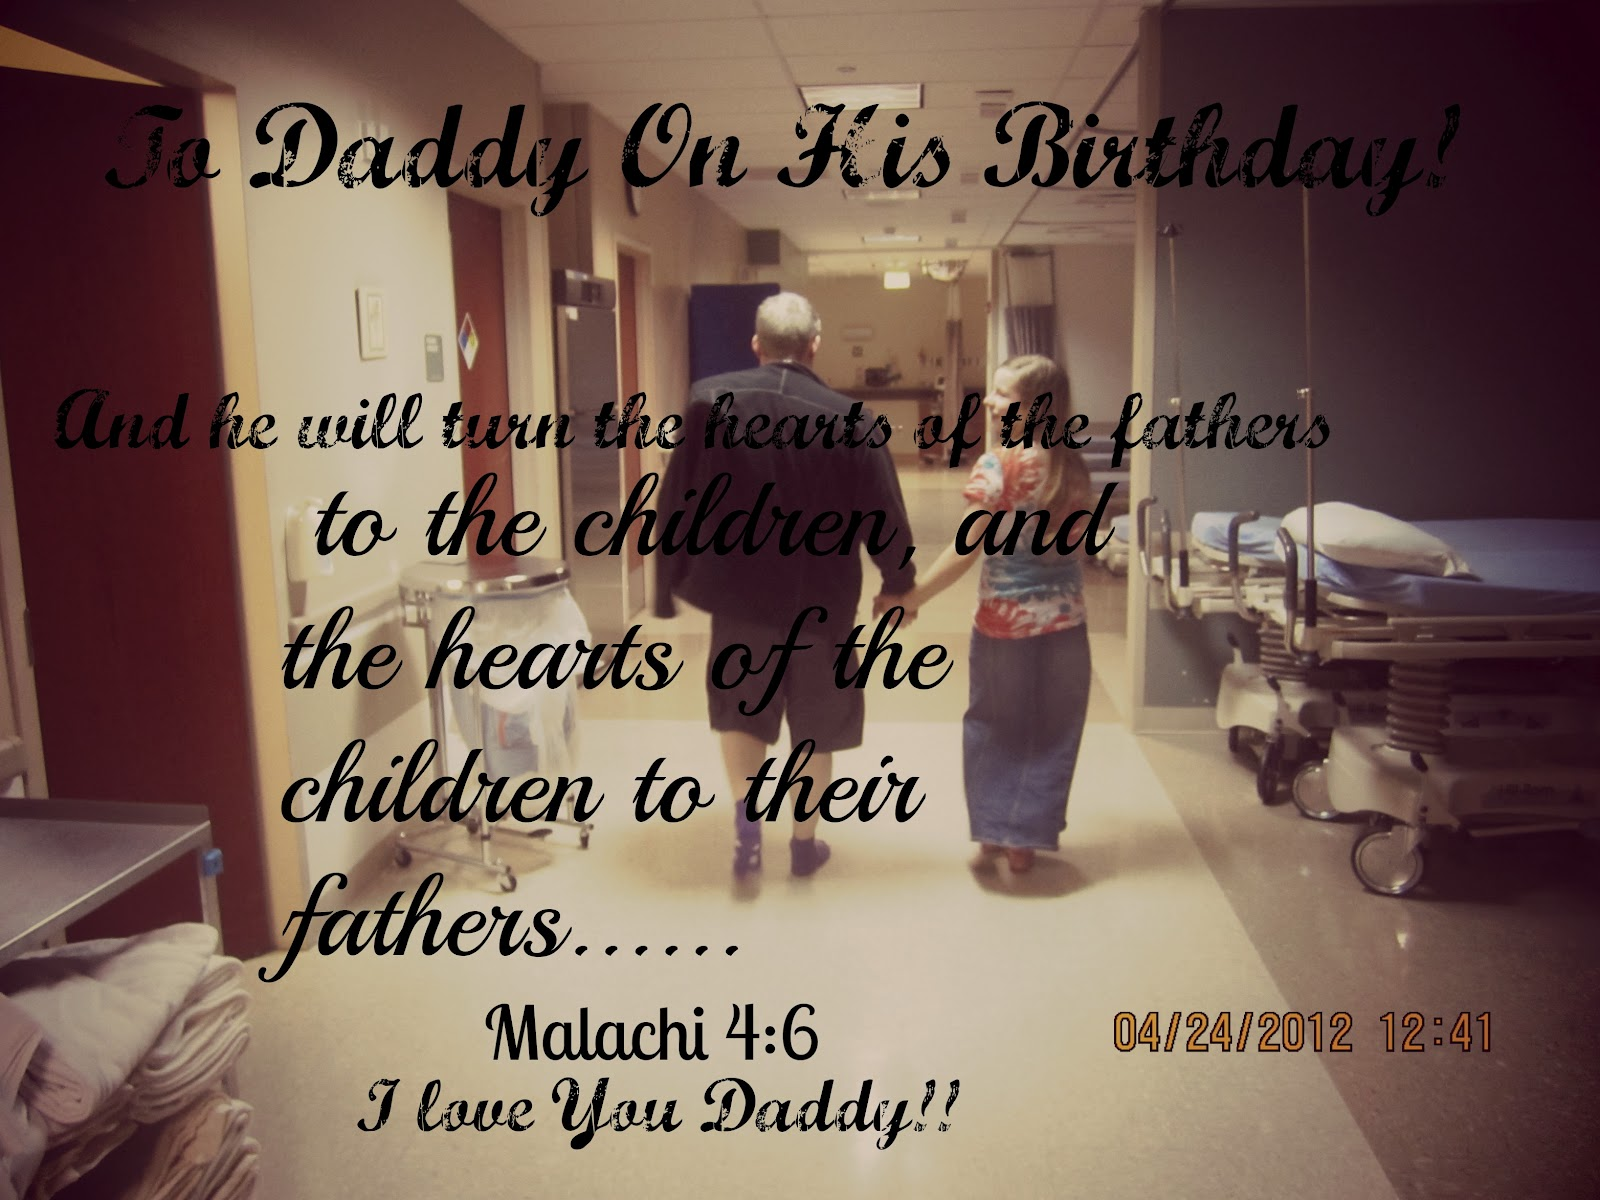 Funny Daughter Quotes Funny Birthday Quotes For Daughter From Dad Funny Happy Birthday